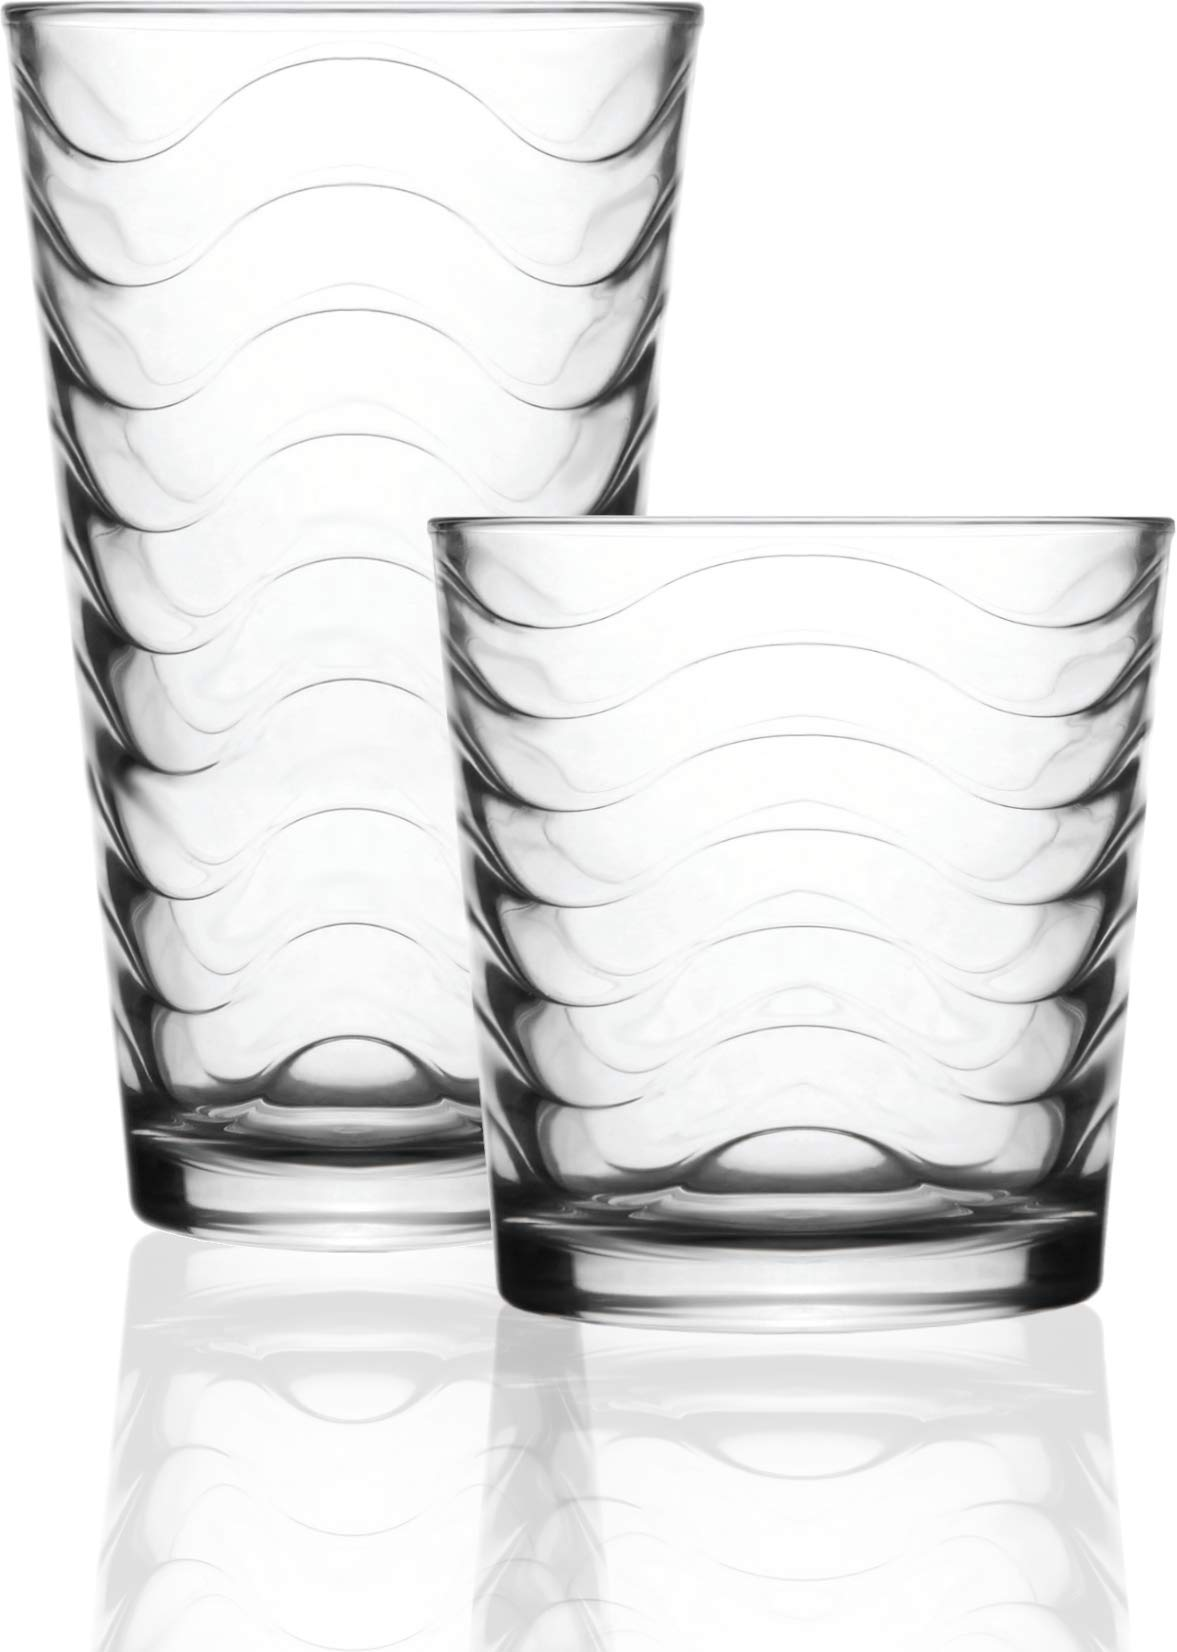 Circleware 40138 Pulse Set of 12 Highball Tumbler Drinking Glasses and Whiskey Cups 6-15.7 oz & 6-12.5 oz, Glassware for Water, Beer, Juice, Ice Tea, Bar Beverages, 12pc, Clear